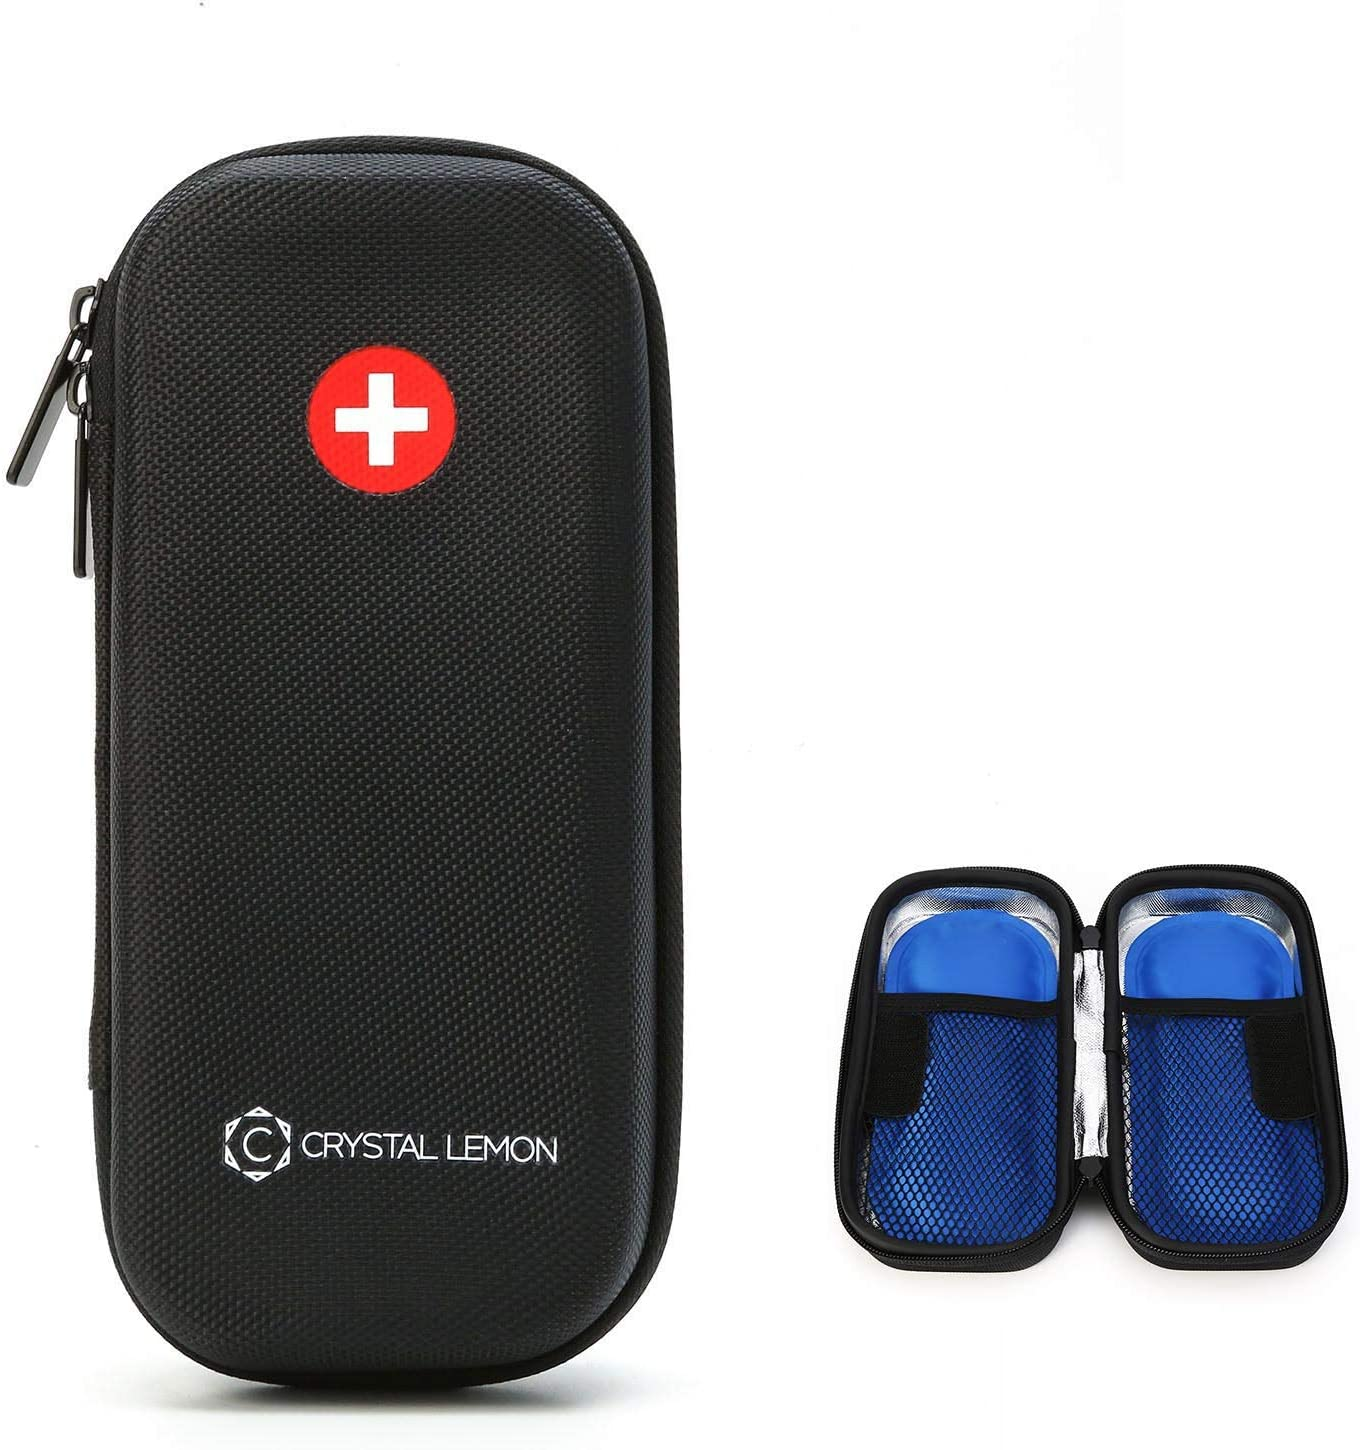 Insulin Cooler Travel Case Designed for EpiPen, Insulin Travel Case Includes 2 Free Ice Pack by C Crystal Lemon